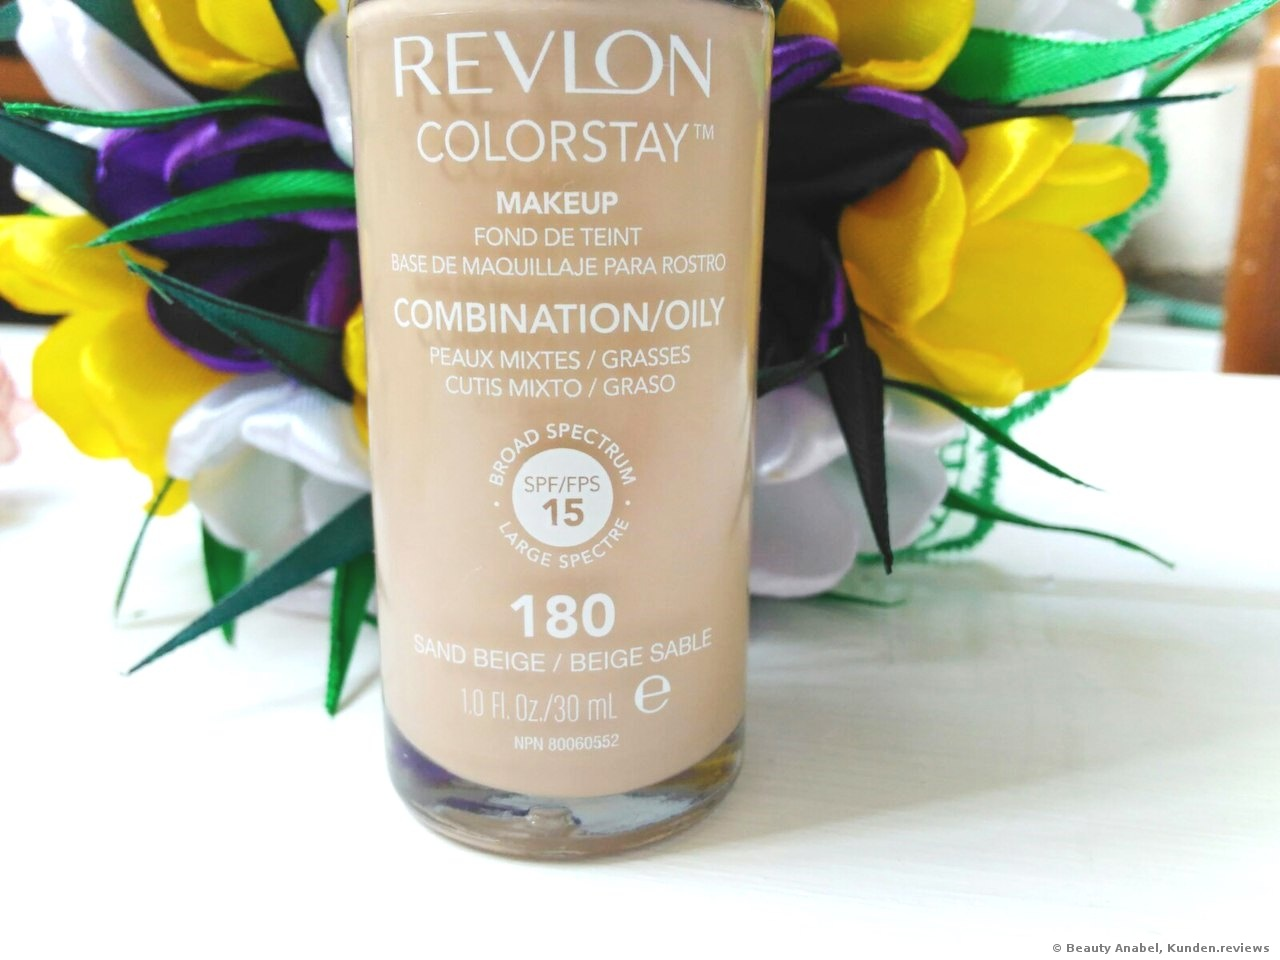 Revlon Colorstay Makeup for Combination / Oily Skin Foundation